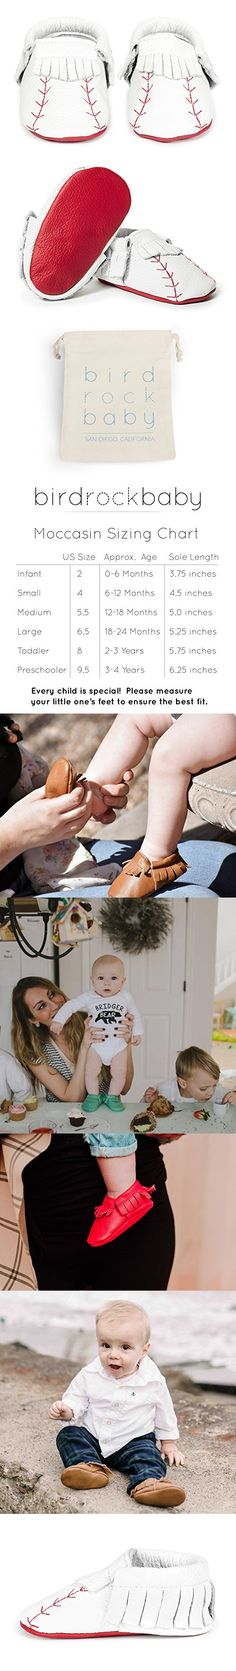 BirdRock Baby Moccasins - Soft Sole Leather Boys and Girls Shoes for Infants, Babies, and Toddlers (Preschooler Home Run Baseball, Girls Shoes, Baby Shoes, Baby Moccasins, Baby Boy Fashion, Infants, Boy Or Girl, Preschool, Toddlers